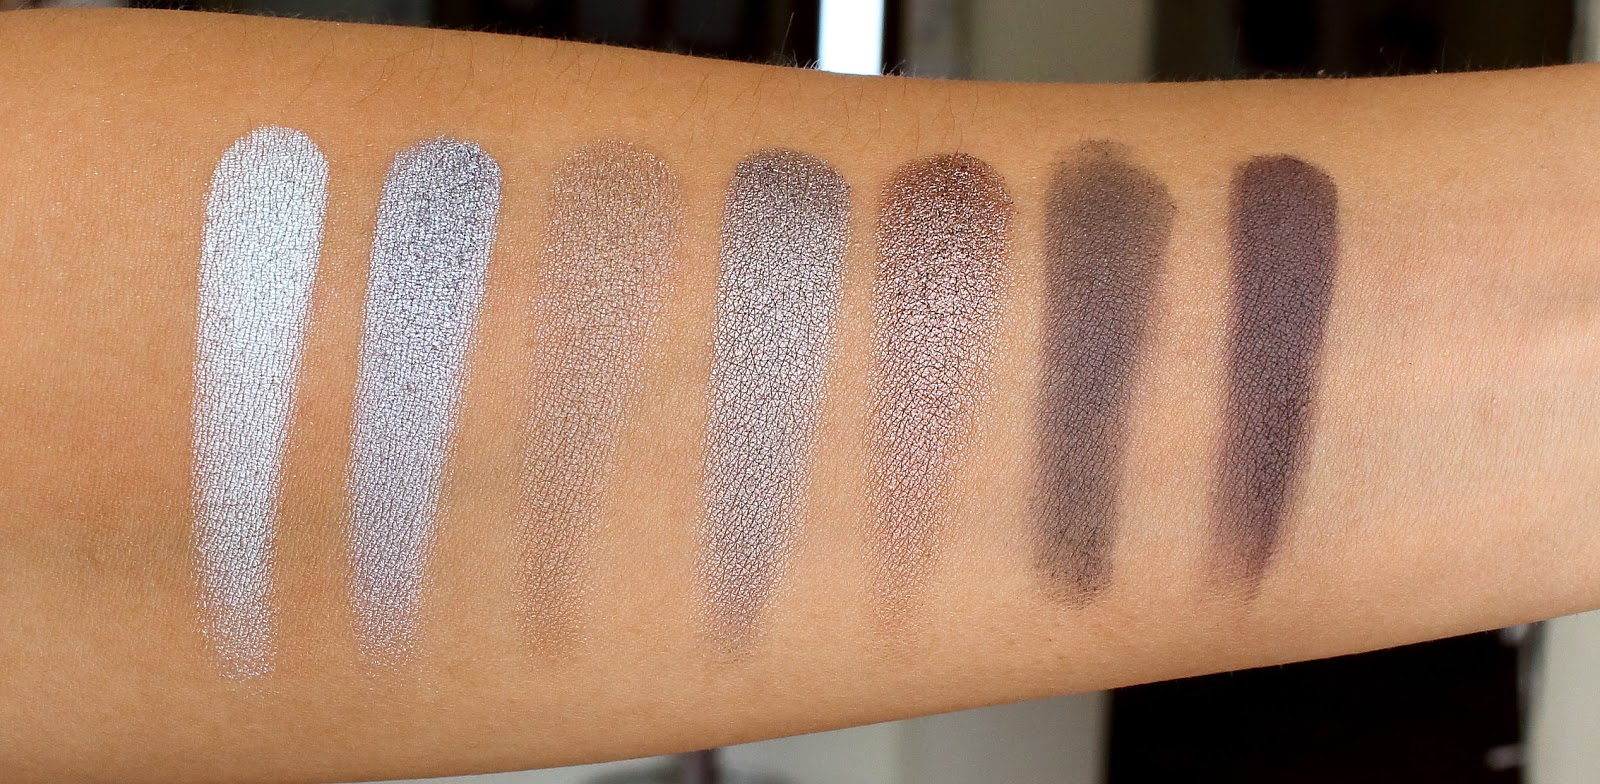 Morphe 35k eyeshadow palette review beauty in bold - Forth Row